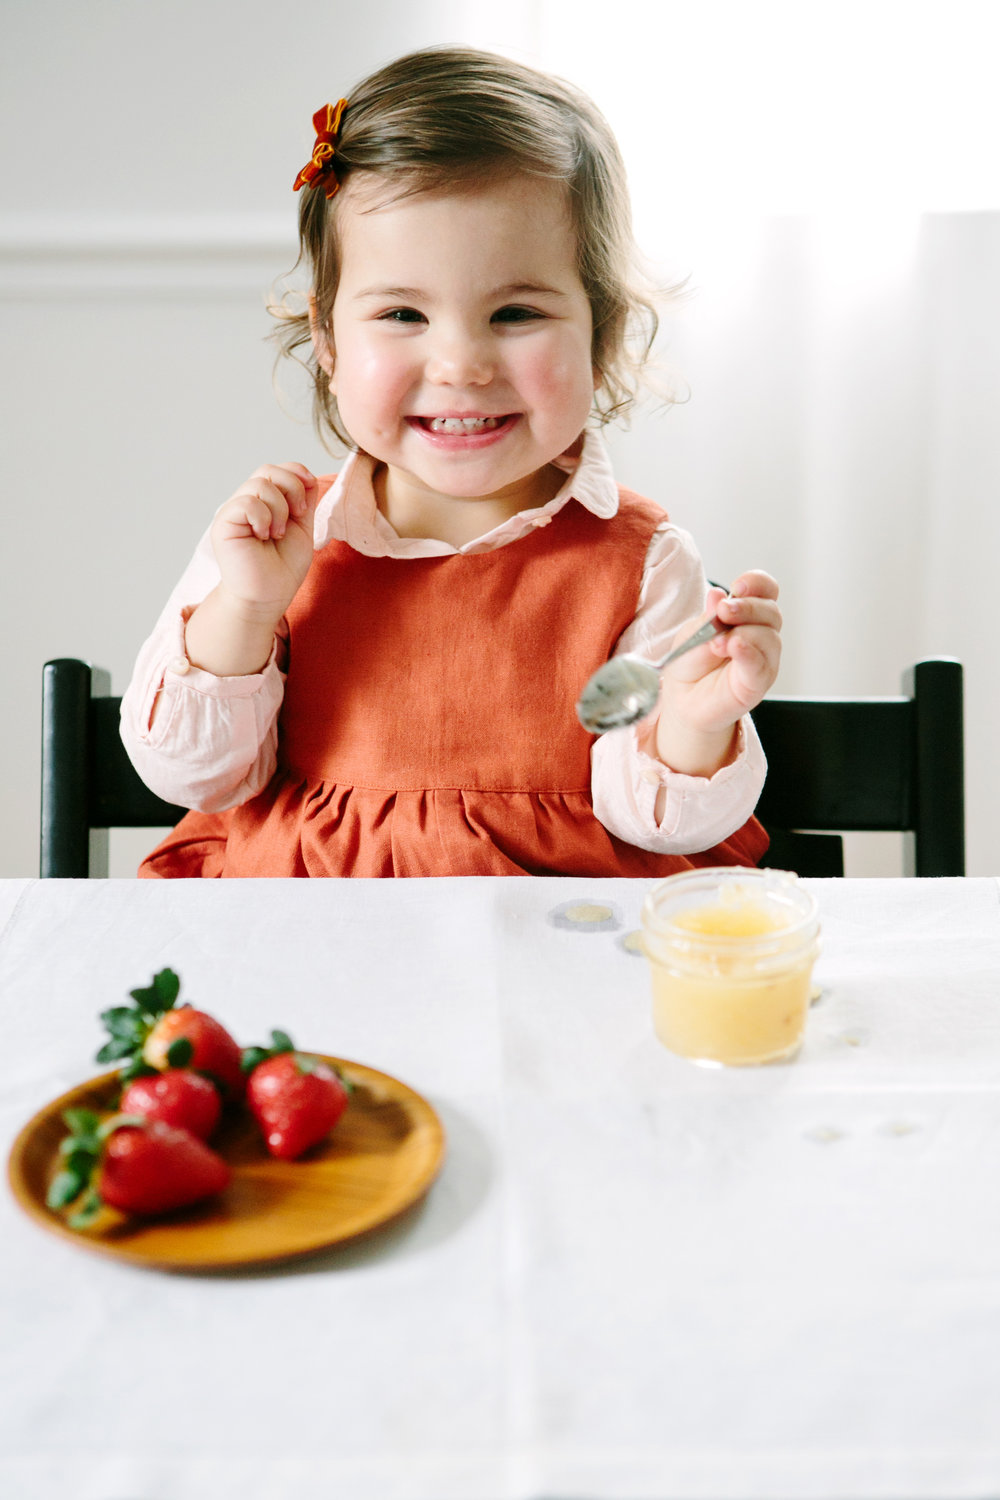 Bianca, just over 1½years old,enjoys her applesauce and strawberries.